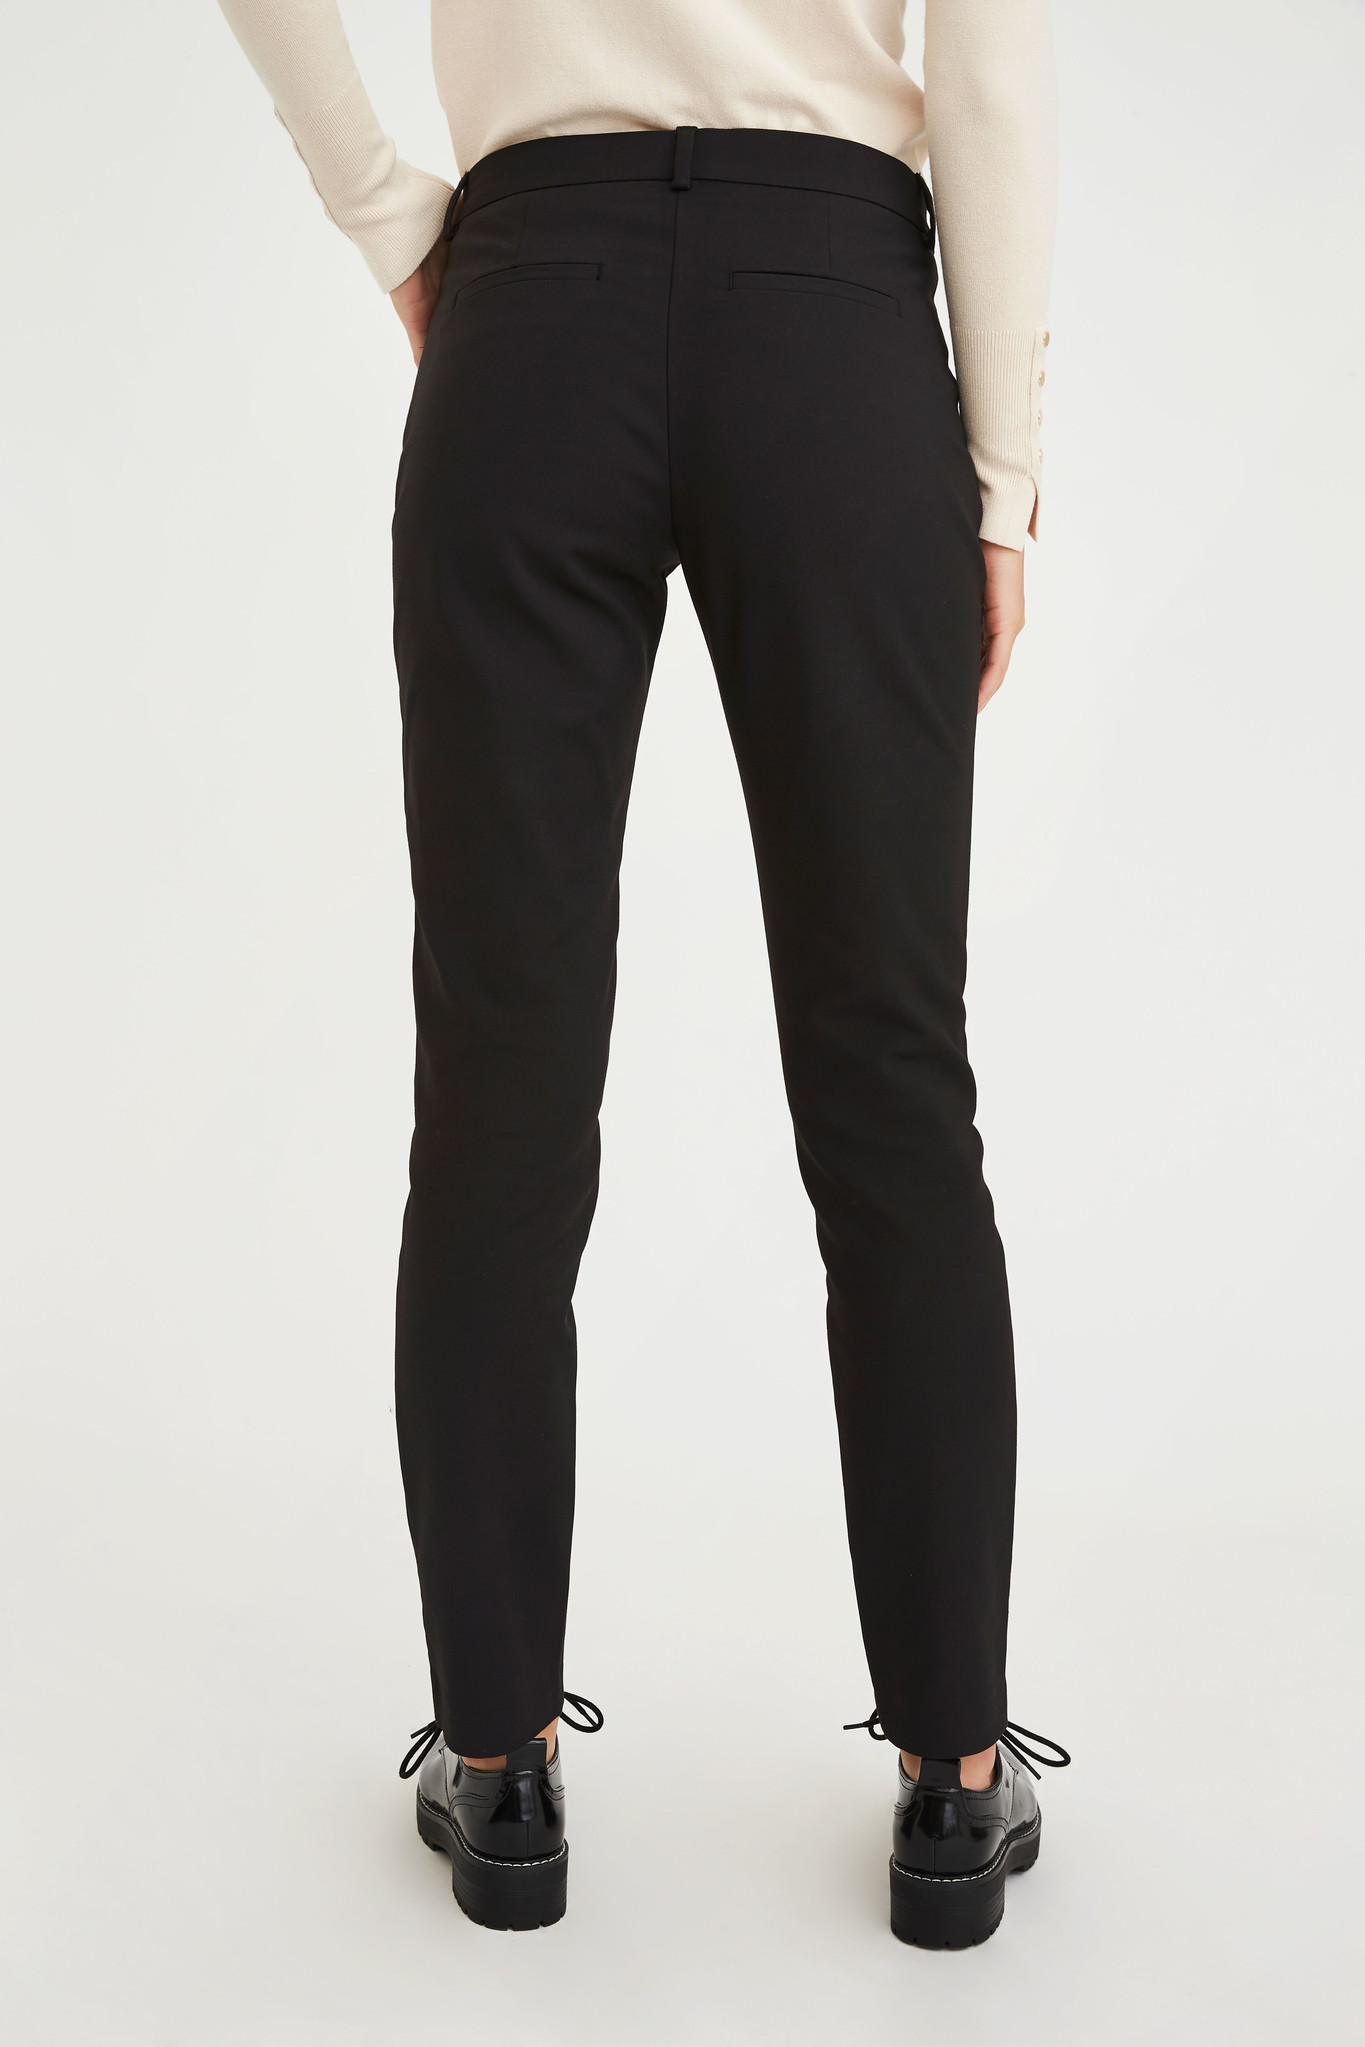 Kylie Pants - Black Jeggin-8